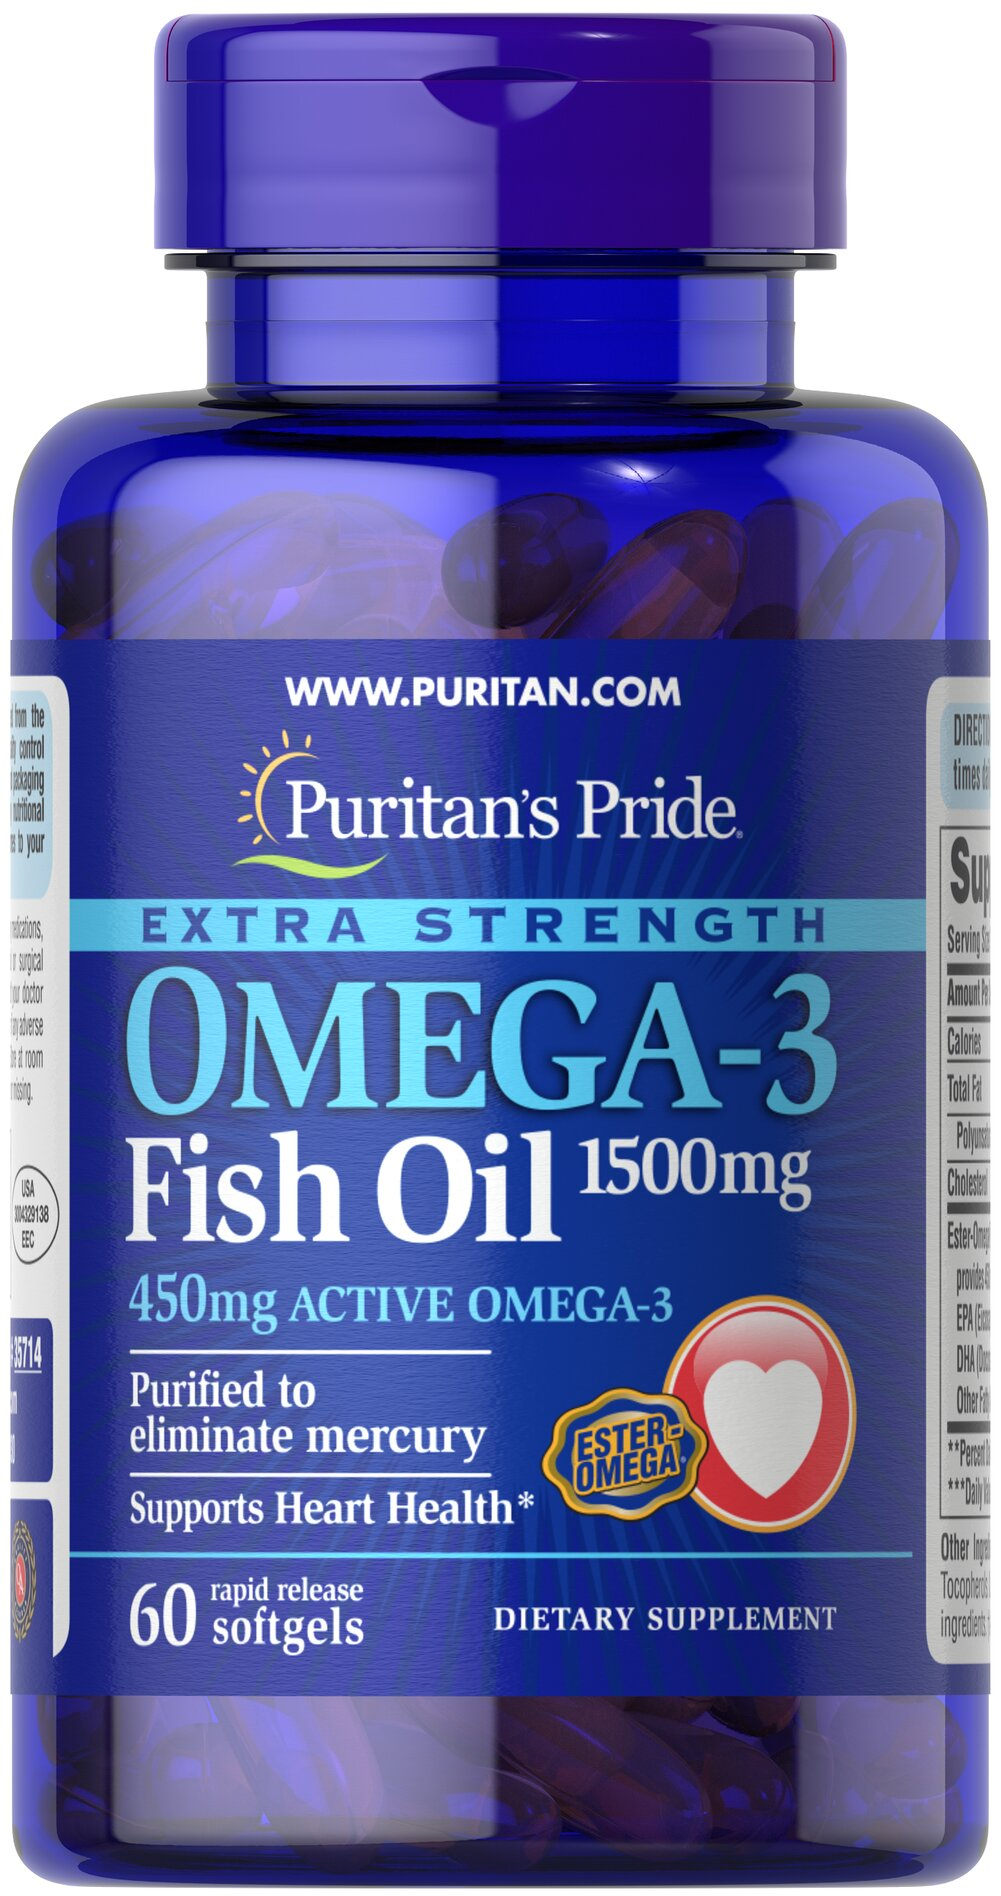 Omega-3 Fish Oil 1500 mg <p><b>Purified to Eliminate Mercury</b></p> <p>Super Potency 1500 mg  in one softgel!</p><p>Contains 450 mg of active Omega-3 per softgel.</p><p>Features fish oil in rapid-release softgels with enhanced potency and superior absorption.**</p> 60 Softgels 1500 mg $12.99